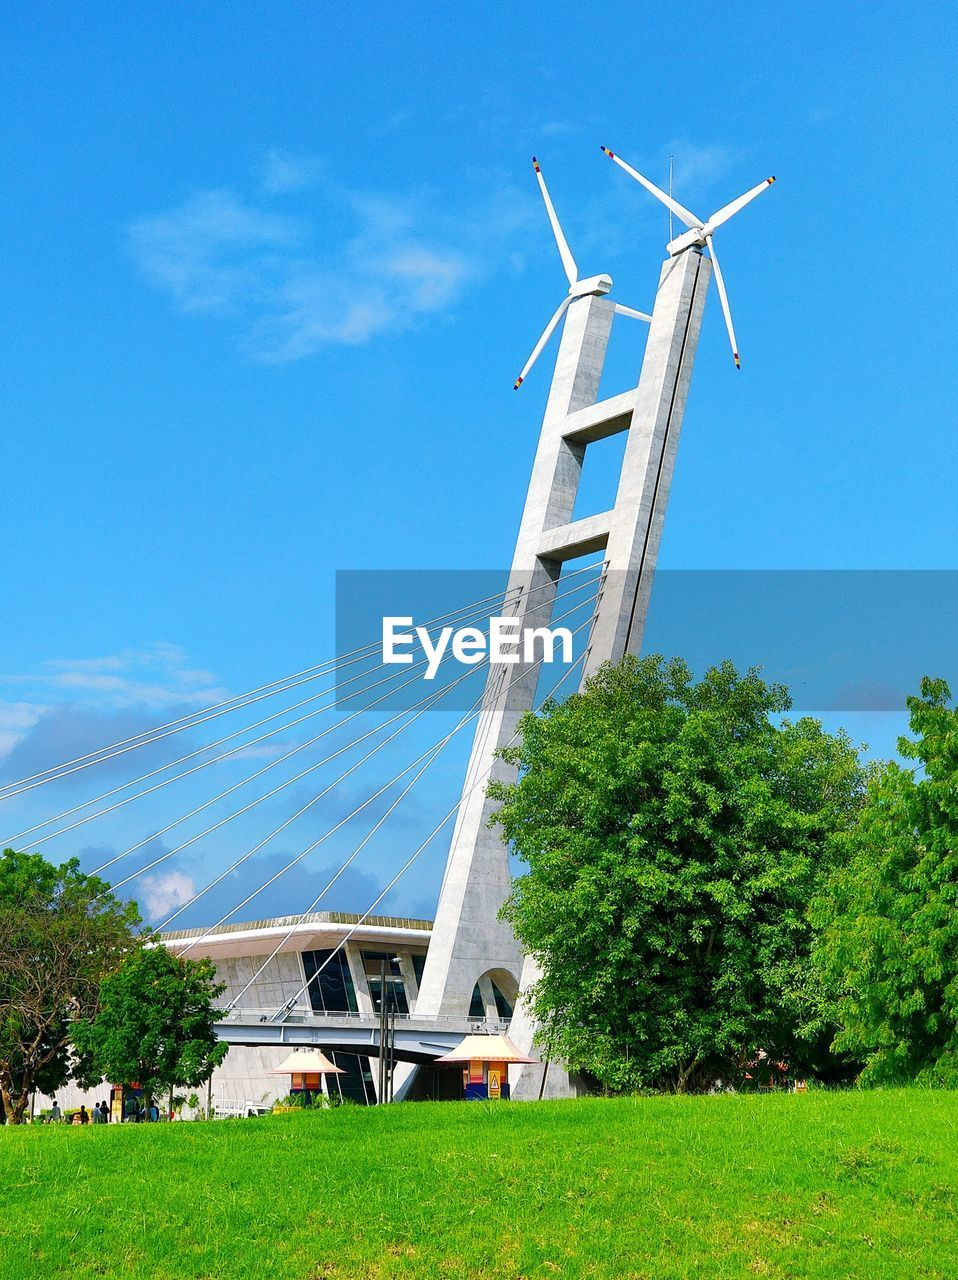 alternative energy, environmental conservation, wind power, wind turbine, renewable energy, fuel and power generation, windmill, field, grass, day, traditional windmill, sky, industrial windmill, outdoors, tree, no people, architecture, built structure, blue, growth, nature